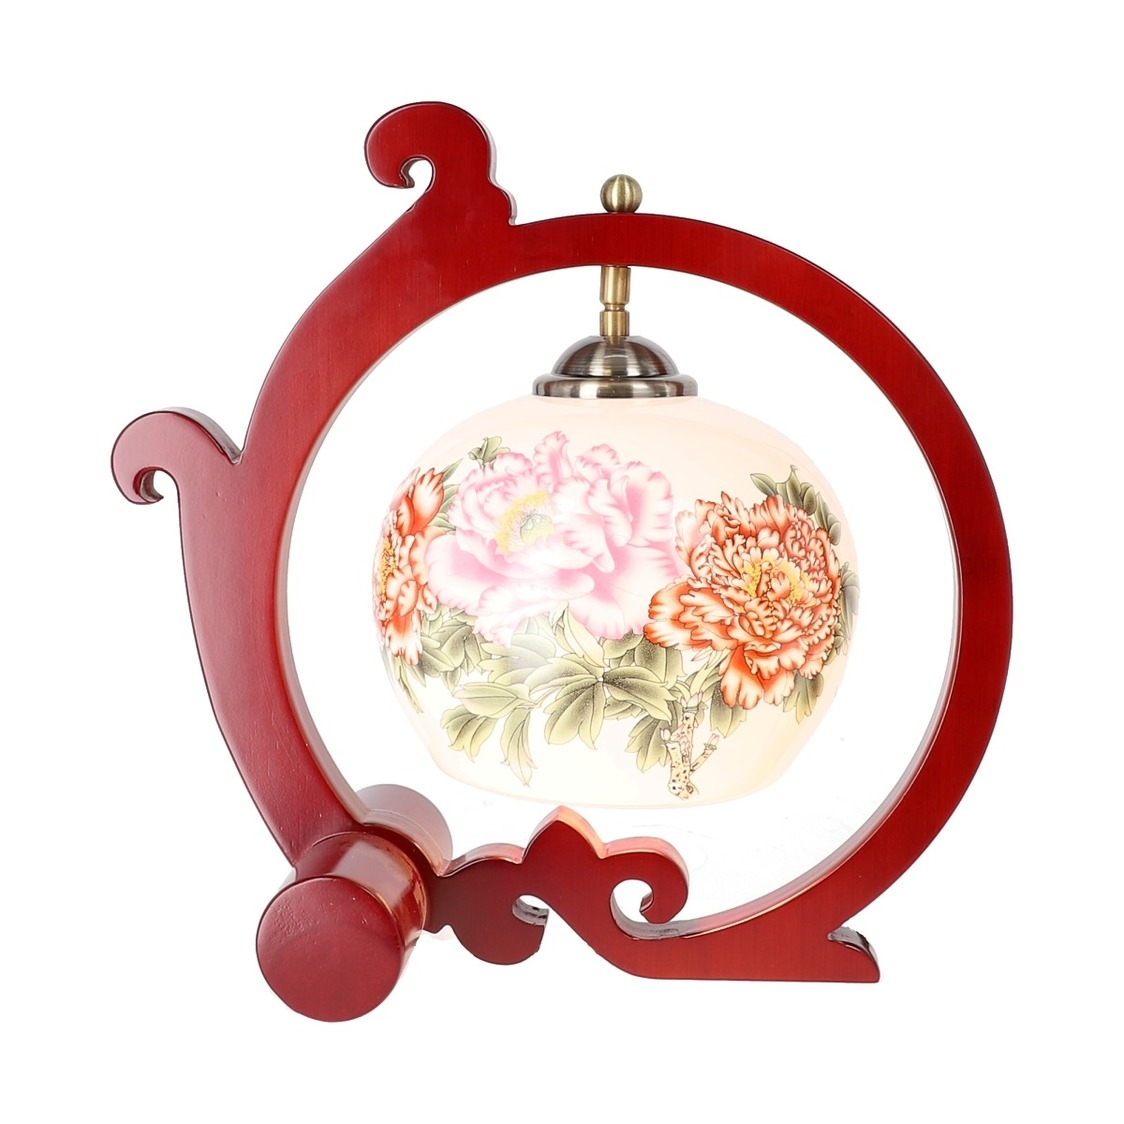 Tradition Cloud Frame Porcelain Lamp in Red Peonies